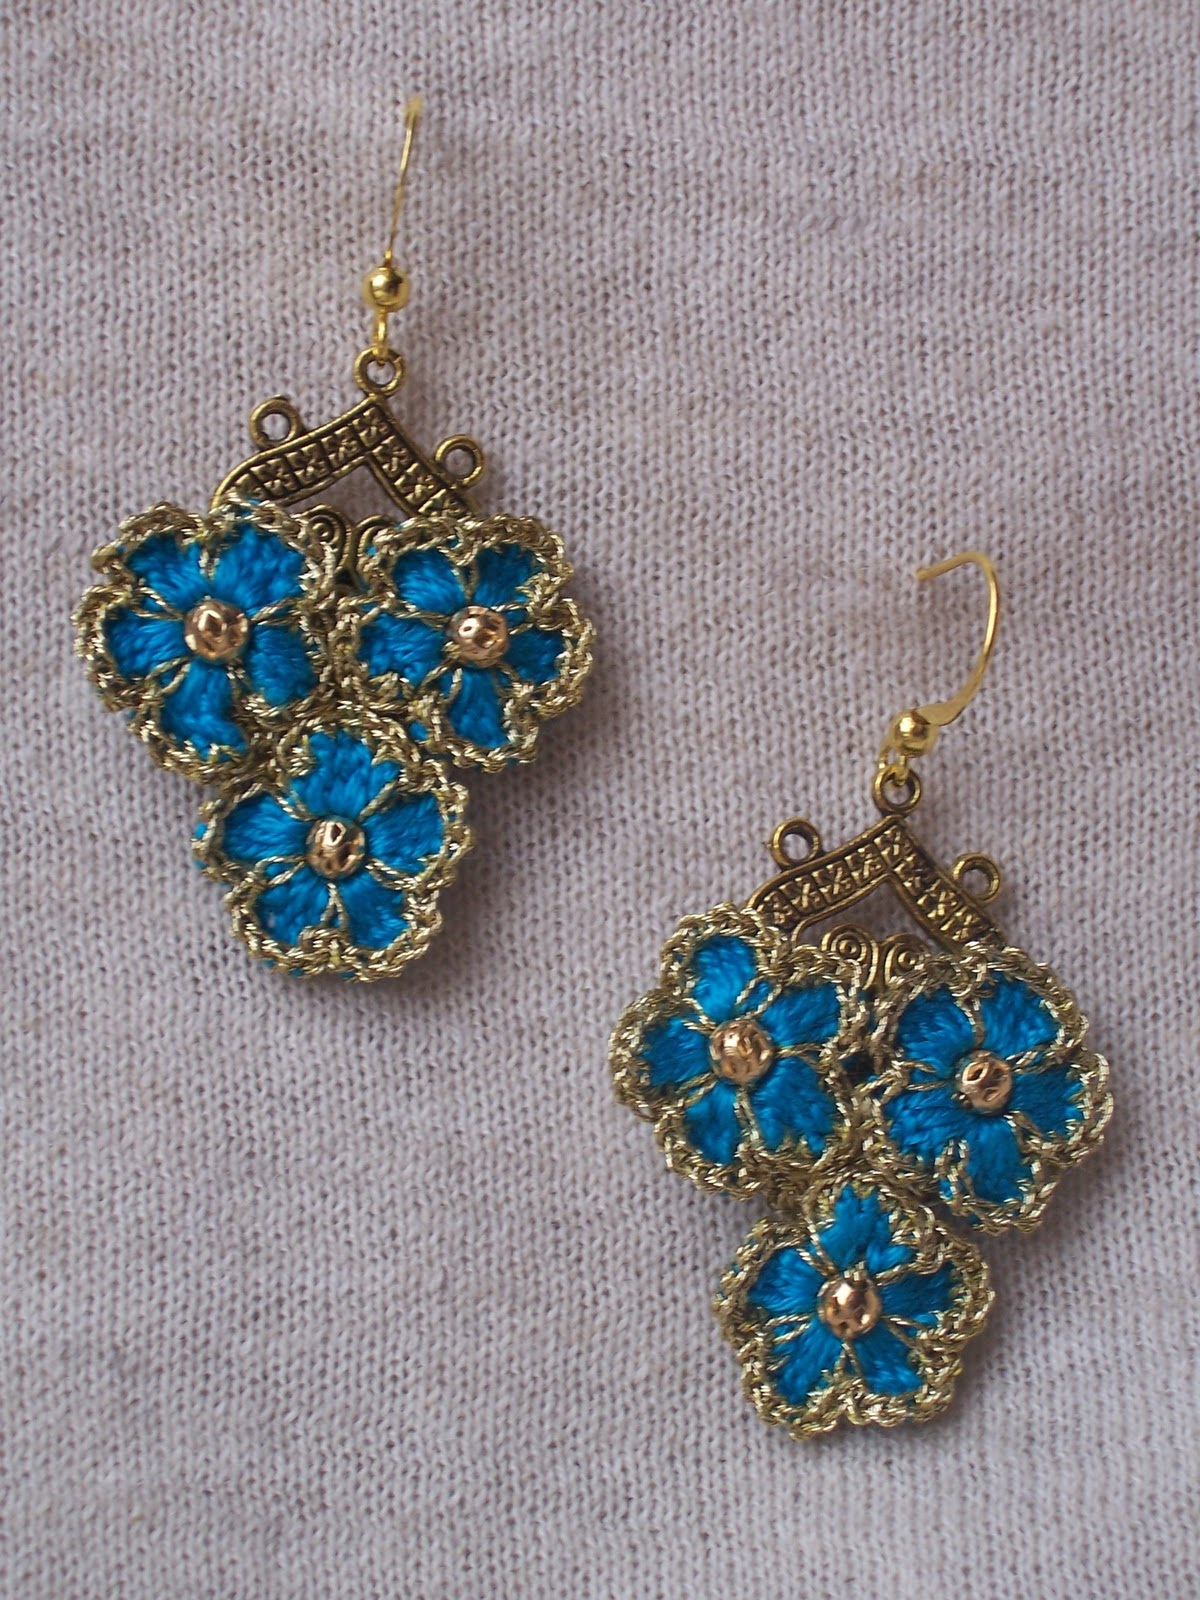 Crochet Earrings : Crochet Earrings Forget-me-not